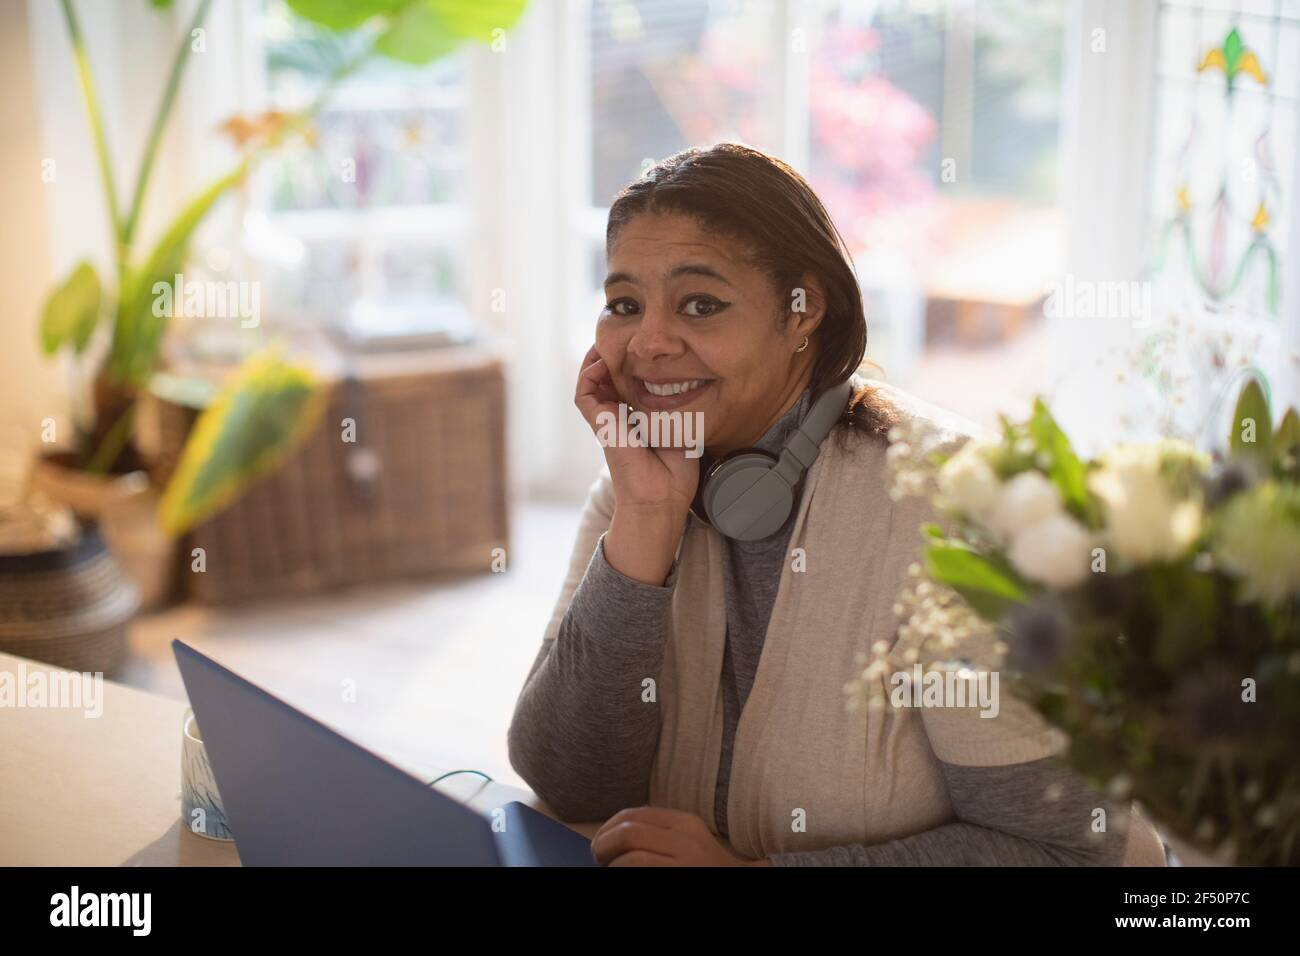 Portrait happy woman working from home at laptop Stock Photo